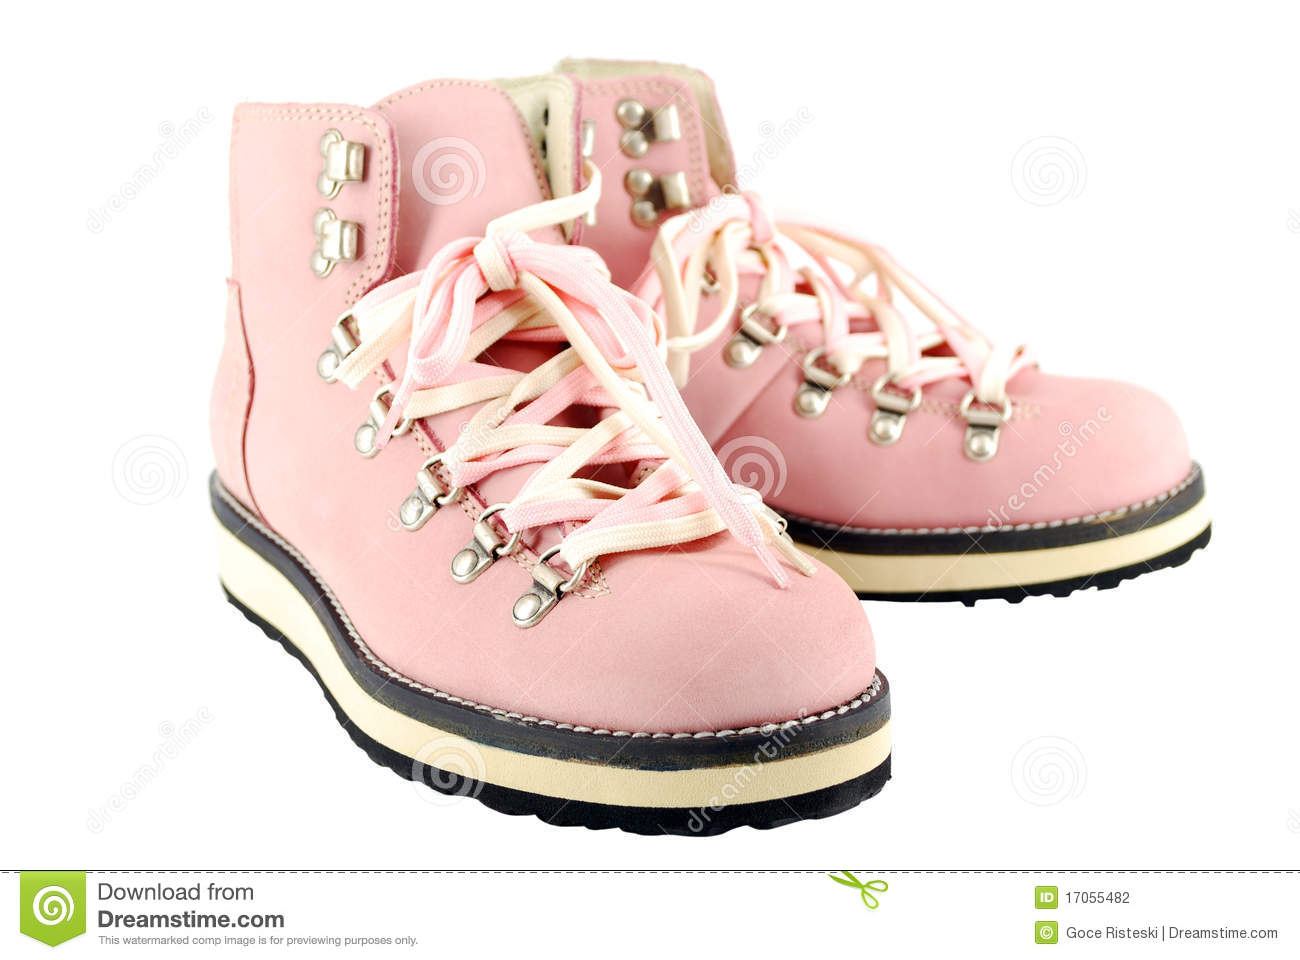 Woman pink hiking boots